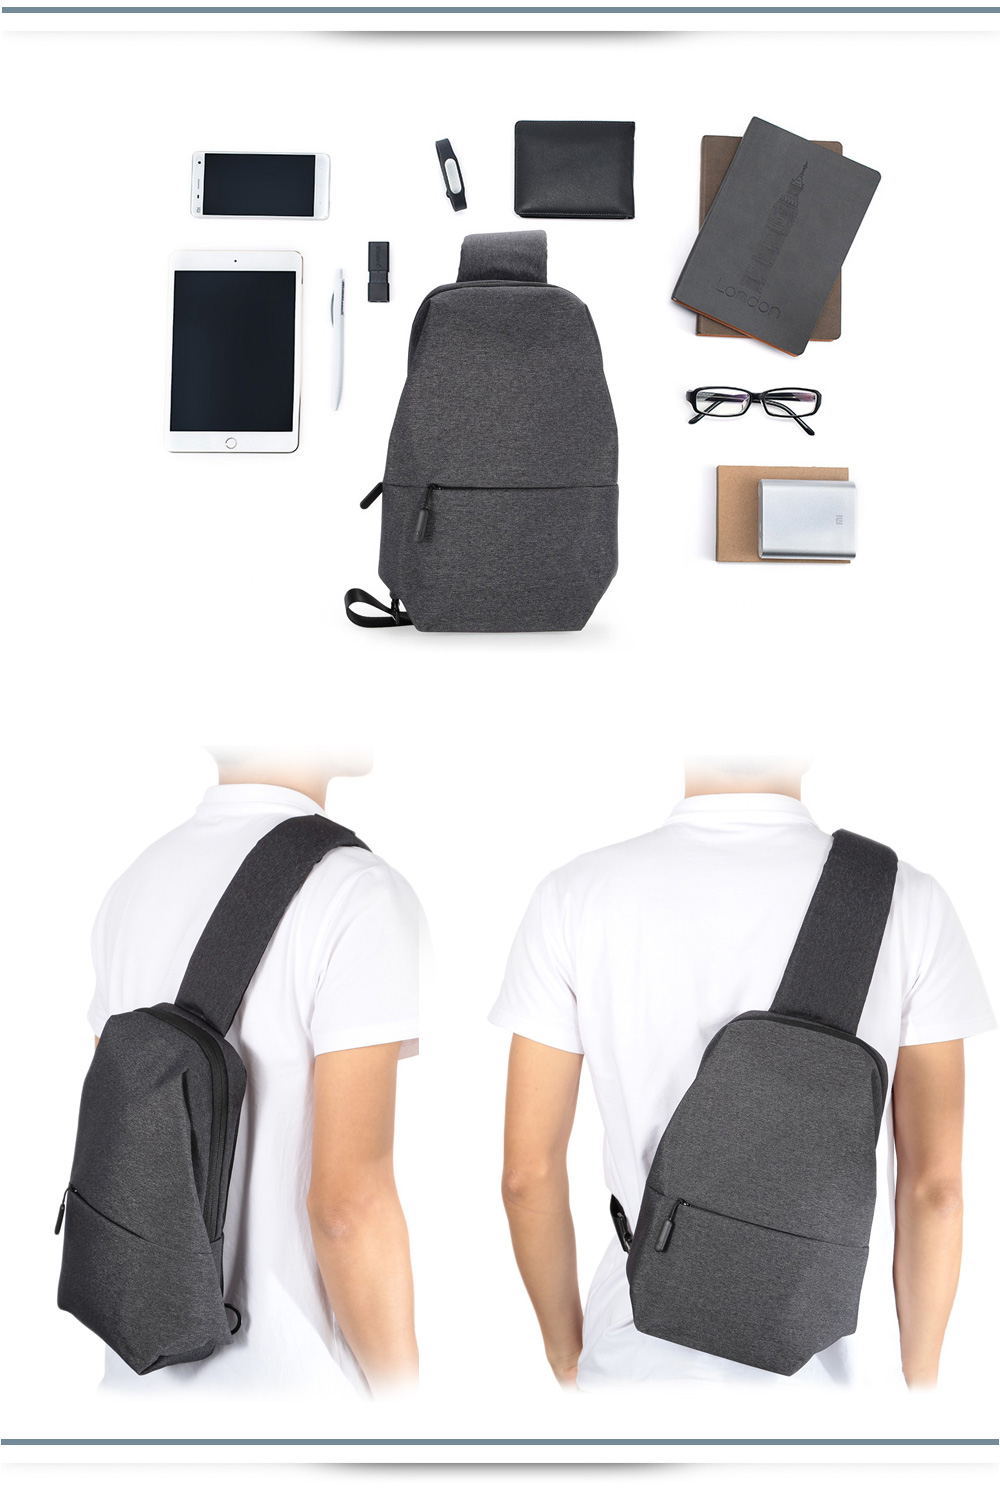 Xiaomi 4L capacity polyester material Smooth draw cord zippers design mobile phone wallet  power bank Sling Bag